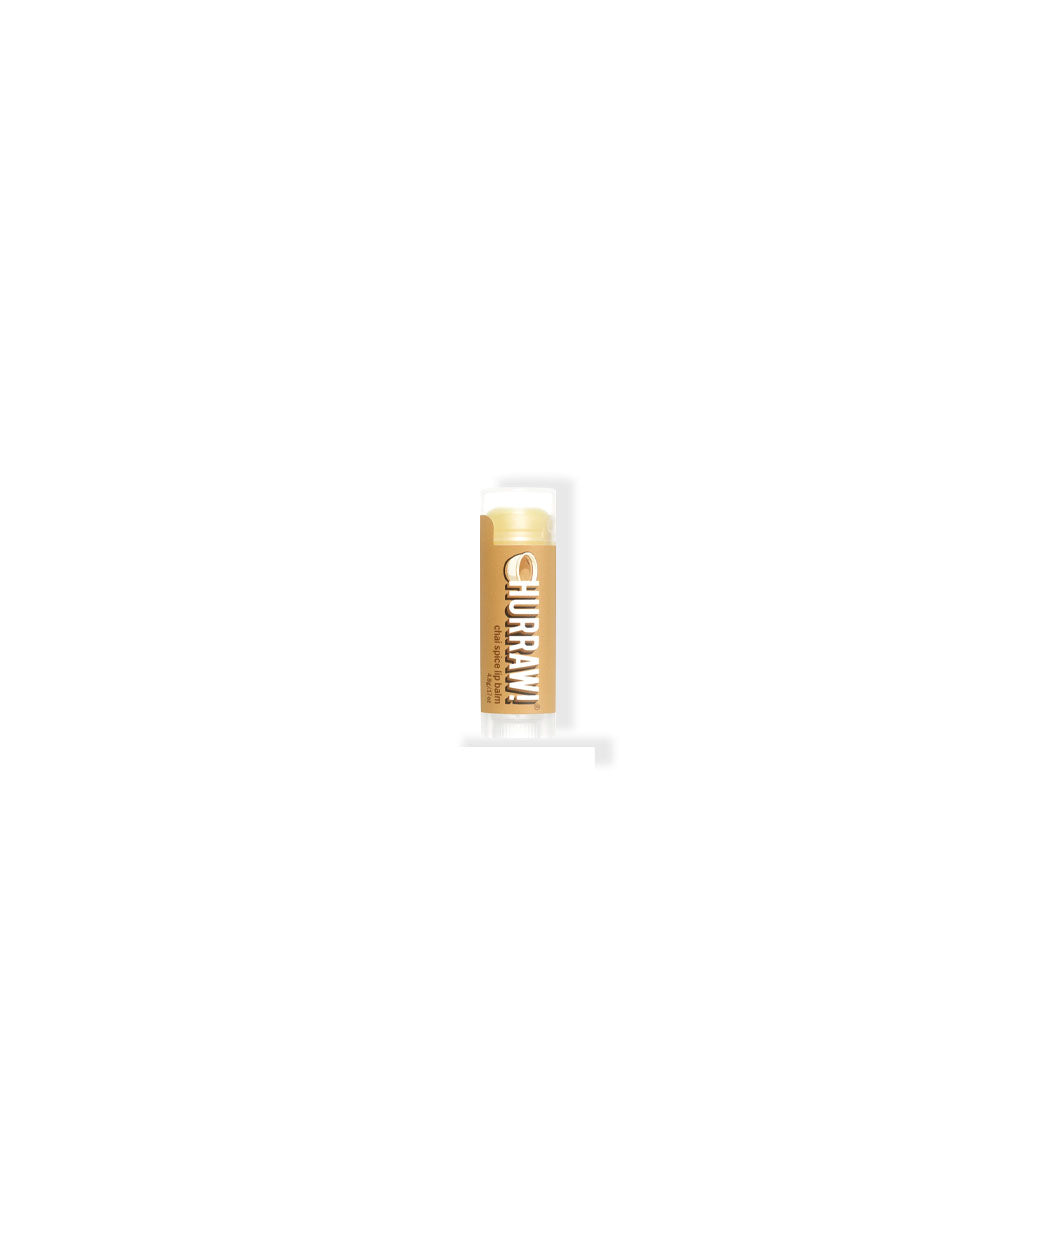 Hurraw Balm - LEMON LAINE - Lip Balm - Hurraw